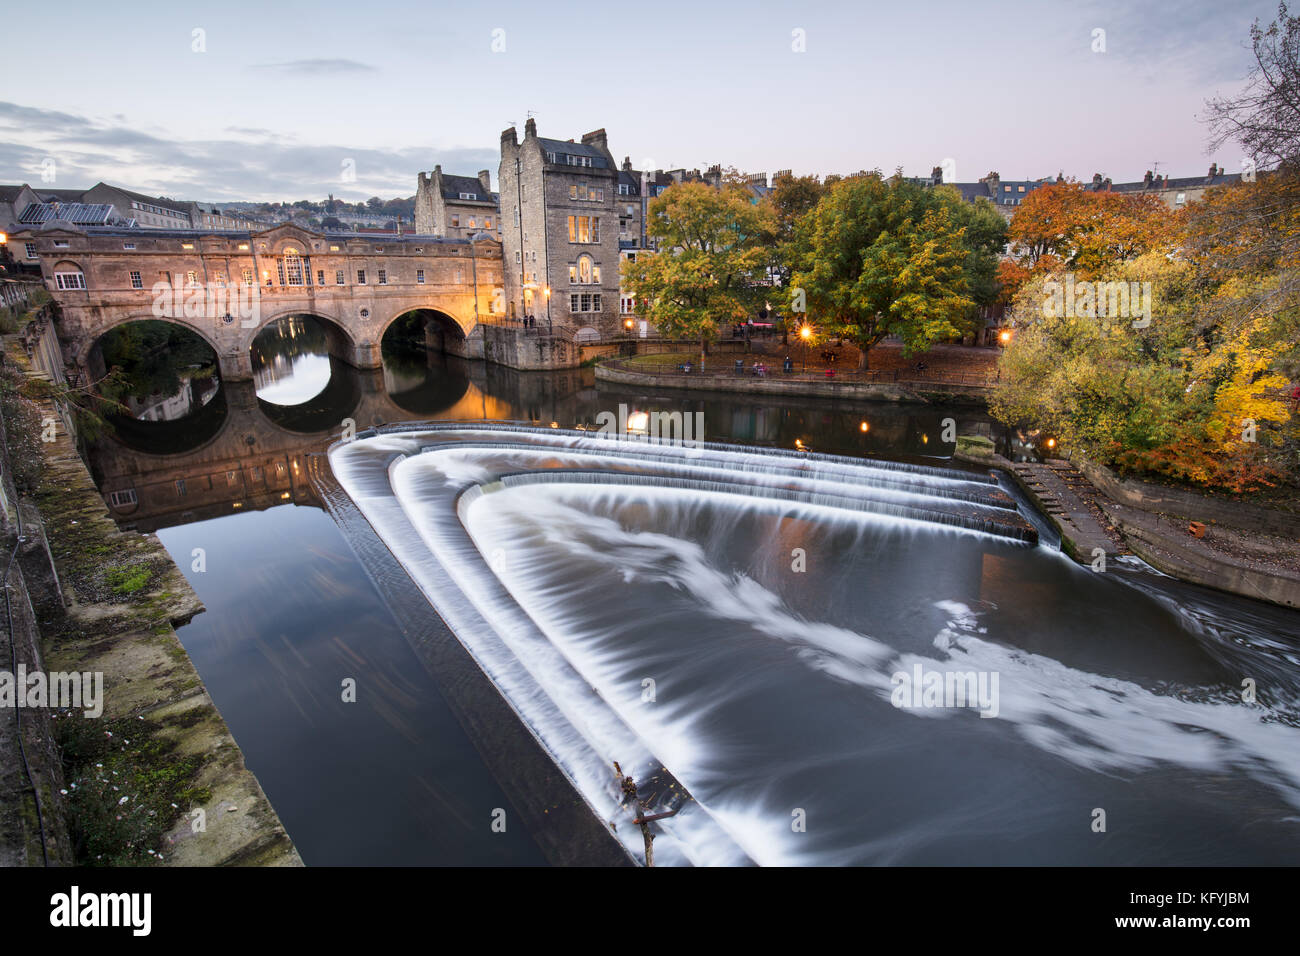 Pulteney Bridge, on the river Avon, a popular viewpoint in the city of Bath, England - Stock Image